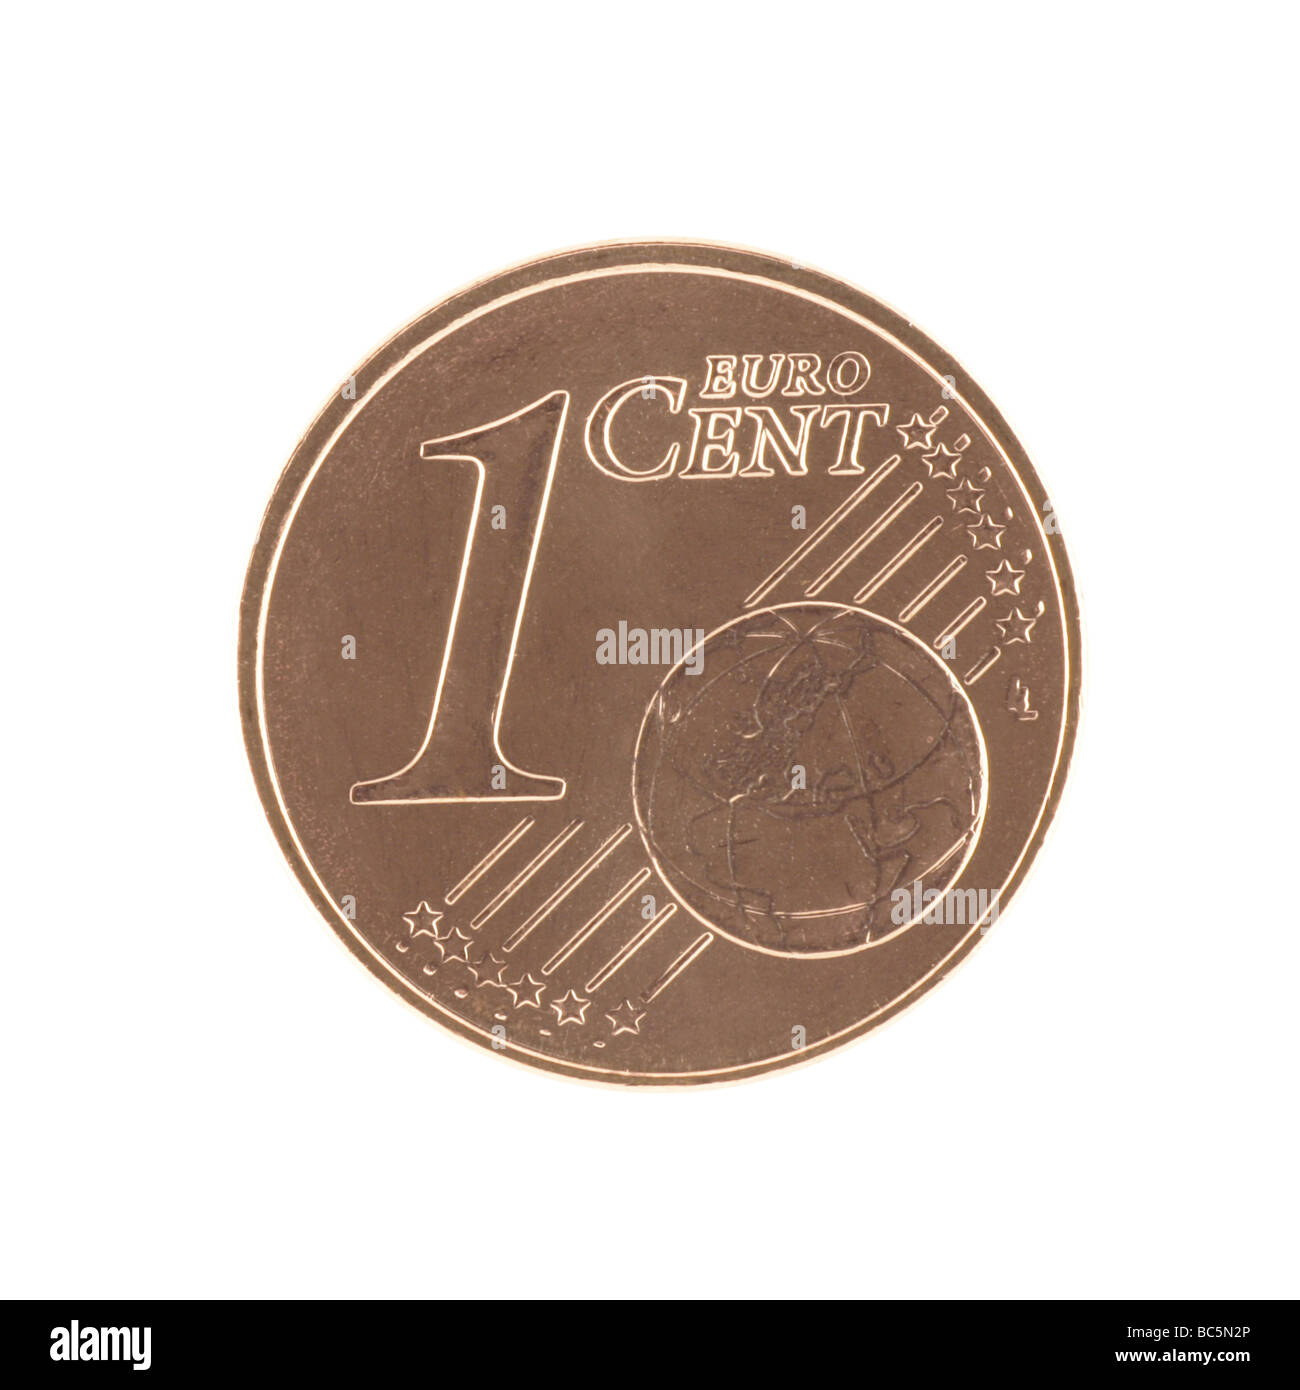 1 eurocent - Stock Image